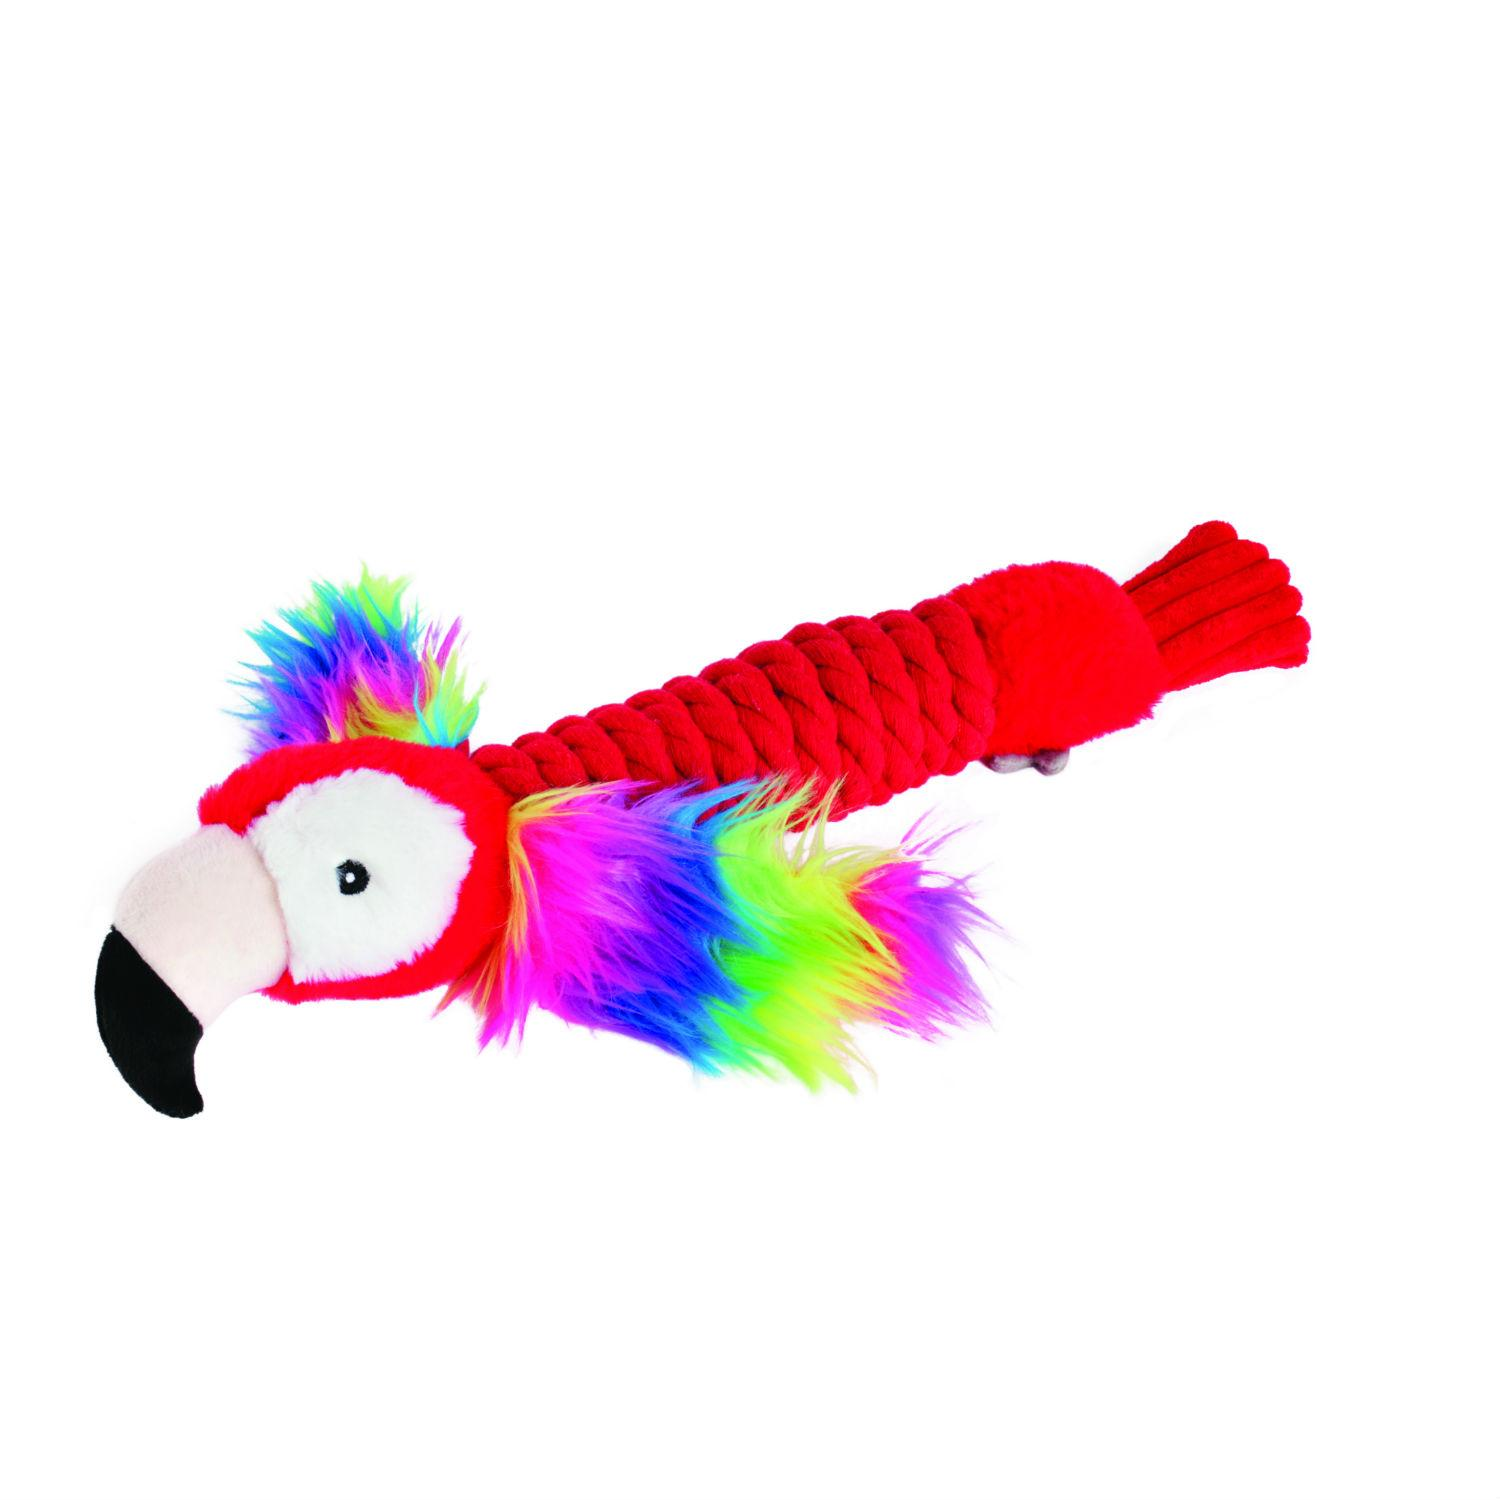 Rubies Paco the Parrot Dog Toy